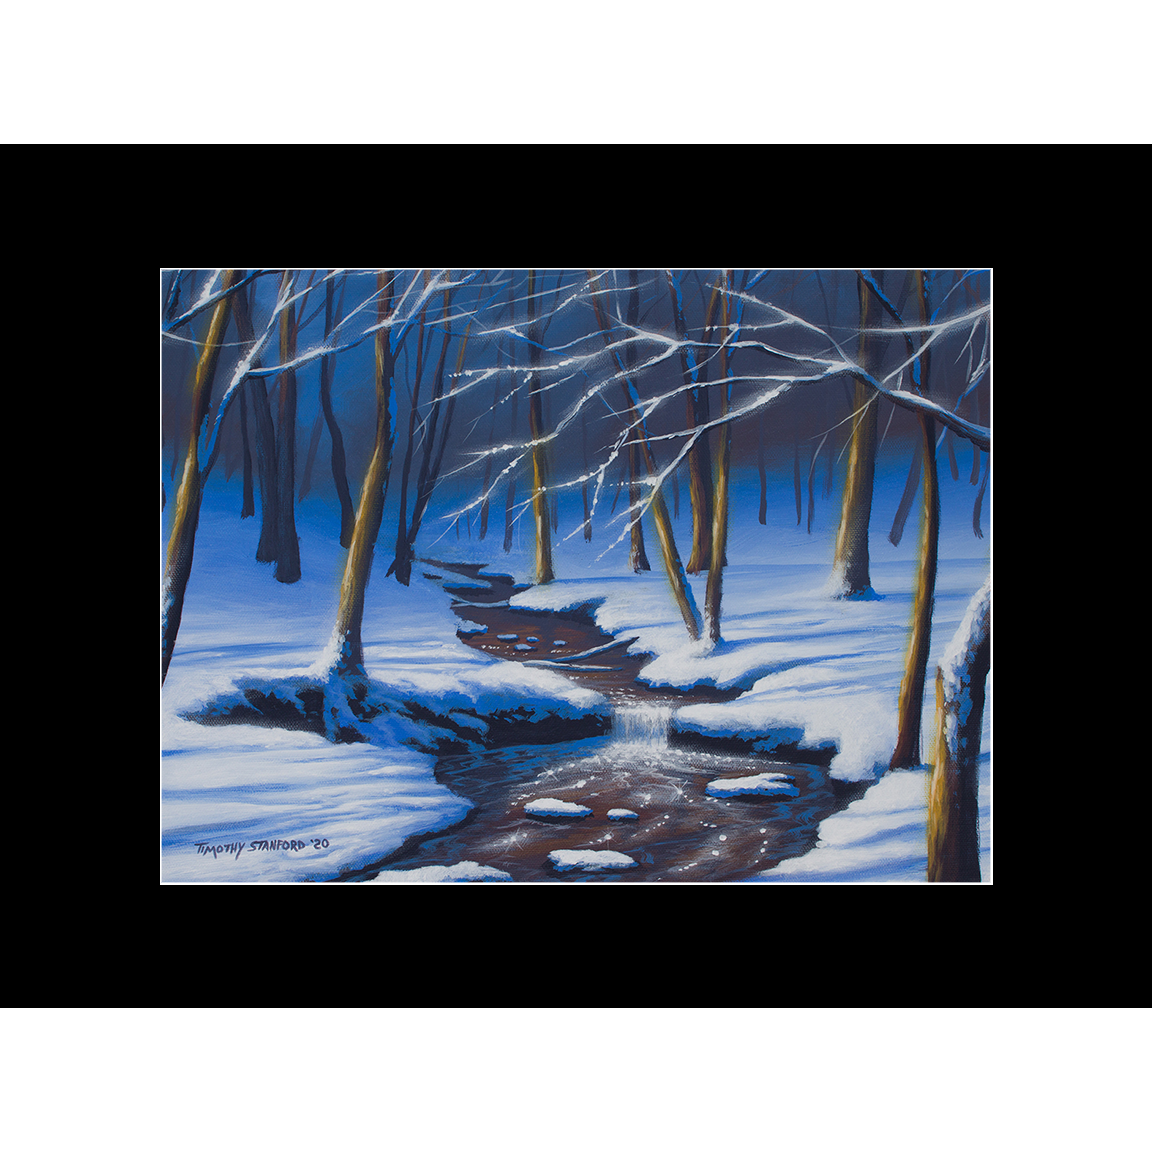 """Fine art matted print of Timothy Stanford's original acrylic painting """"Winter Wonders"""""""